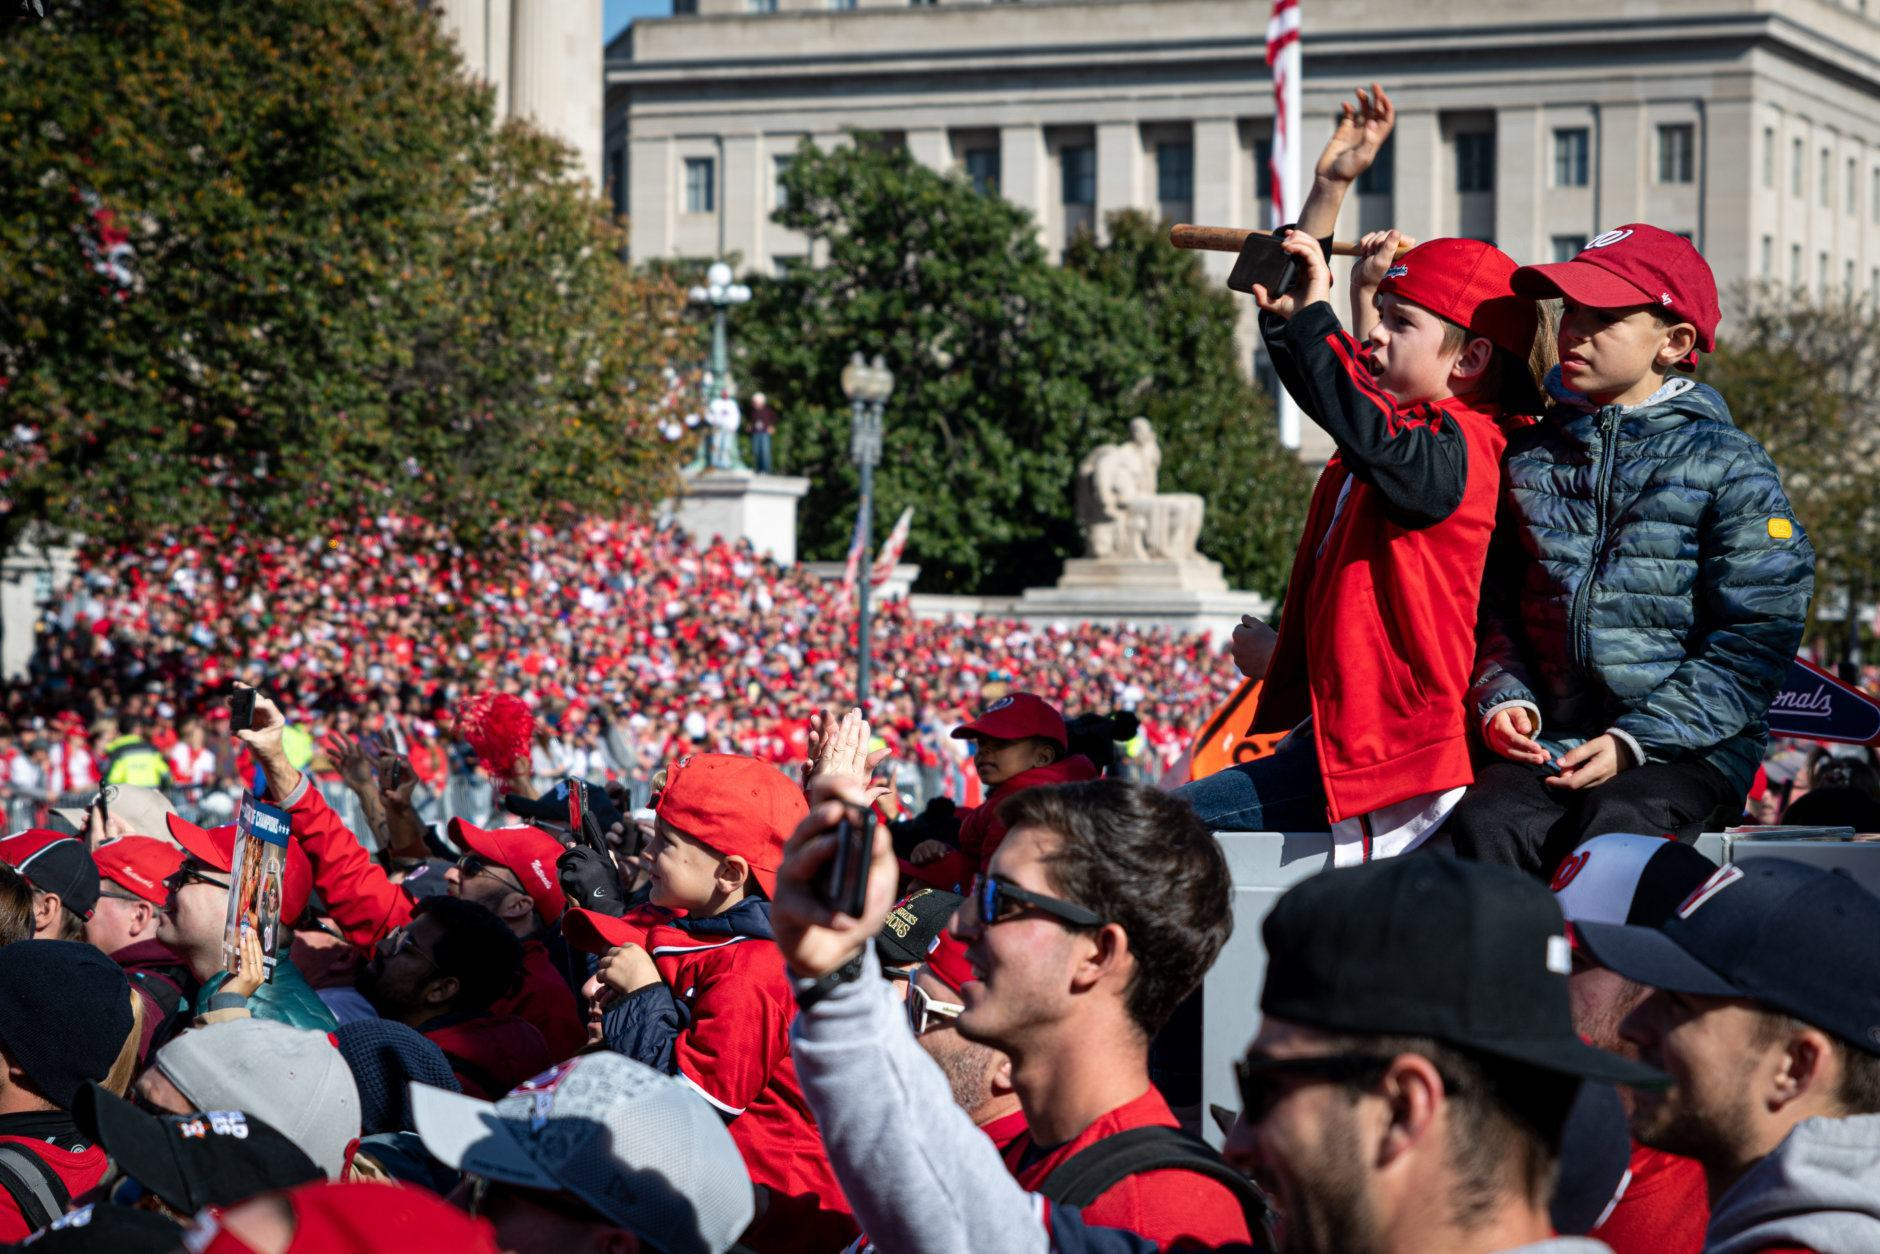 A group of children cheer the Nationals on their victory lap through Washington near the National Archives on Constitution Avenue. (WTOP/Alejandro Alvarez)